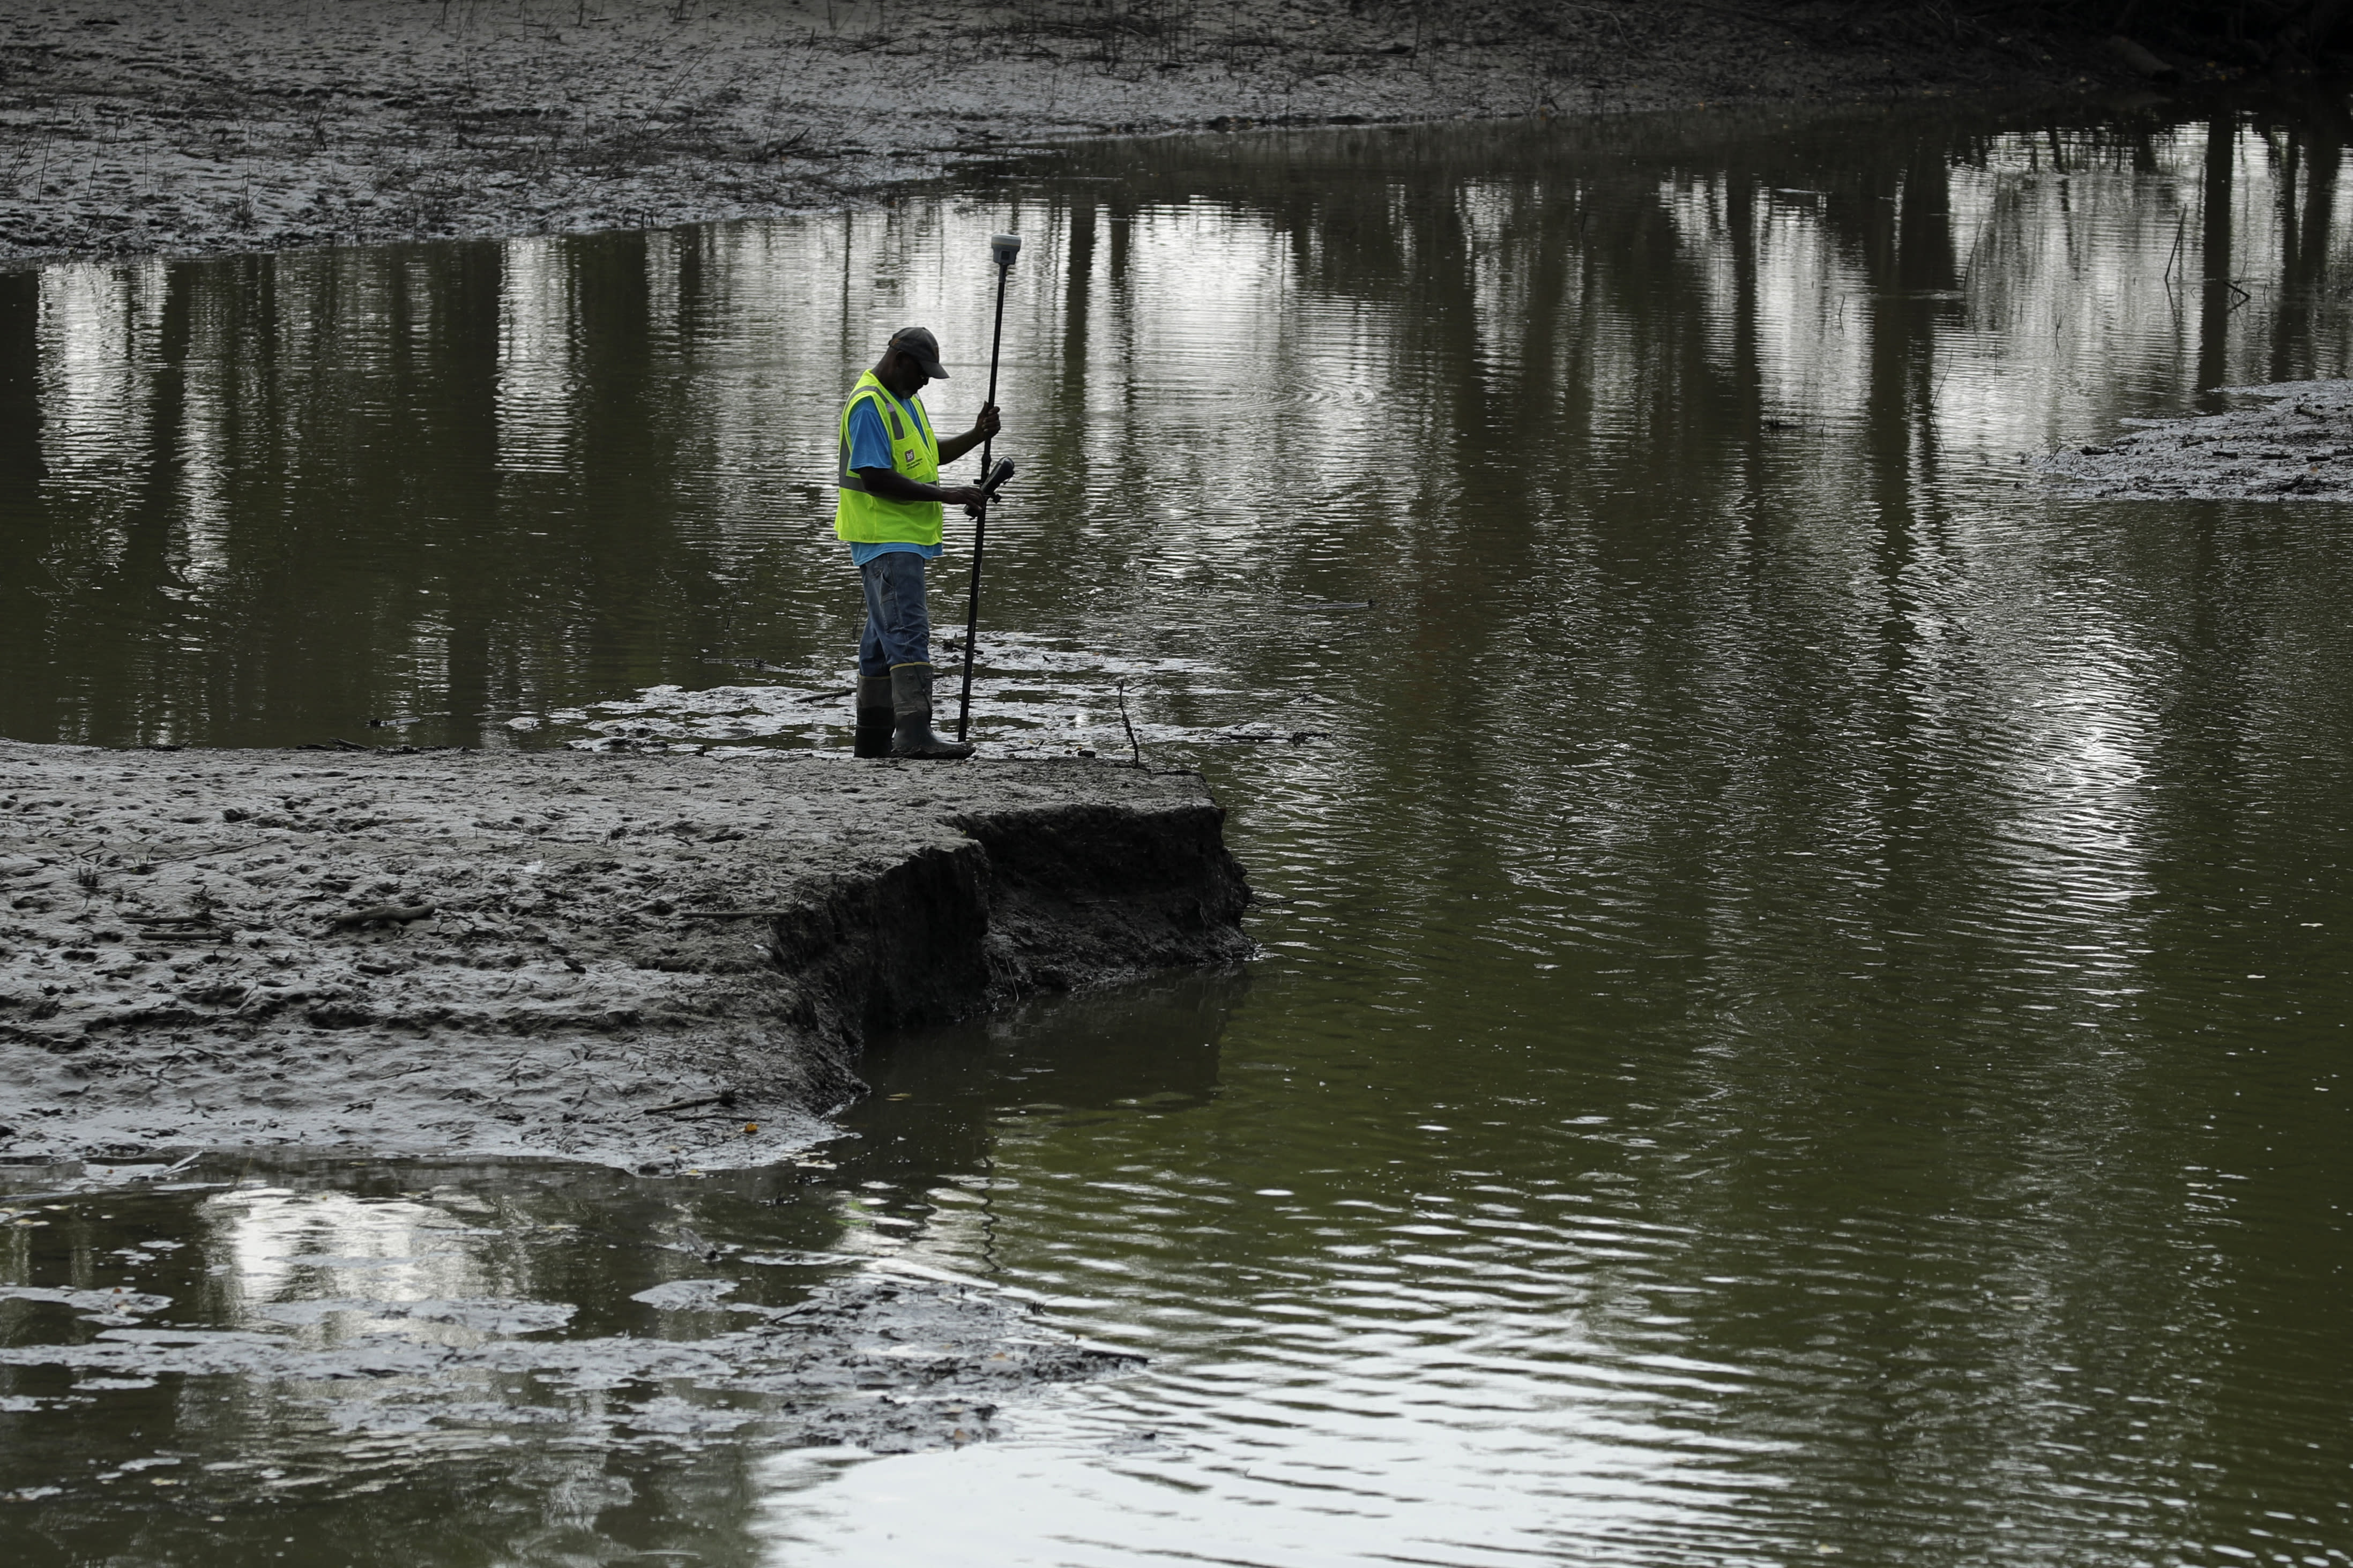 FILE - In this Aug. 6, 2019, file photo, U.S. Army Corps of Engineers worker Ron Allen uses a GPS tool to survey the extent of damage where a levee failed along the Missouri River near Saline City, Mo. The National Weather Service said Thursday, Feb. 13, 2020, there is an elevated flood risk along the eastern Missouri River basin this spring because the soil remains wet and significant snow is on the ground in North Dakota and South Dakota. (AP Photo/Charlie Riedel, File)